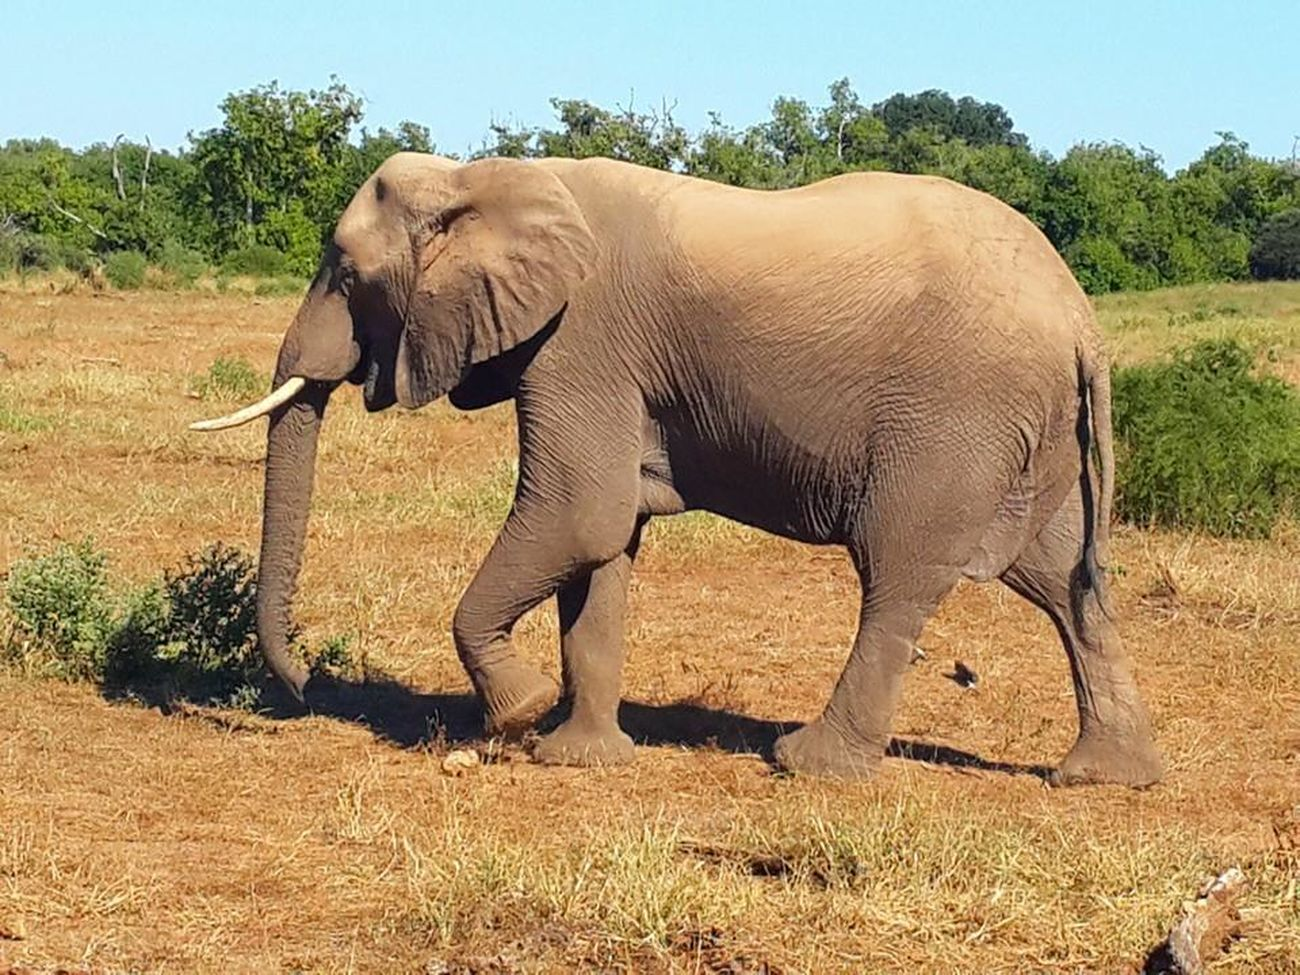 Africa Botswana Elephant Animals